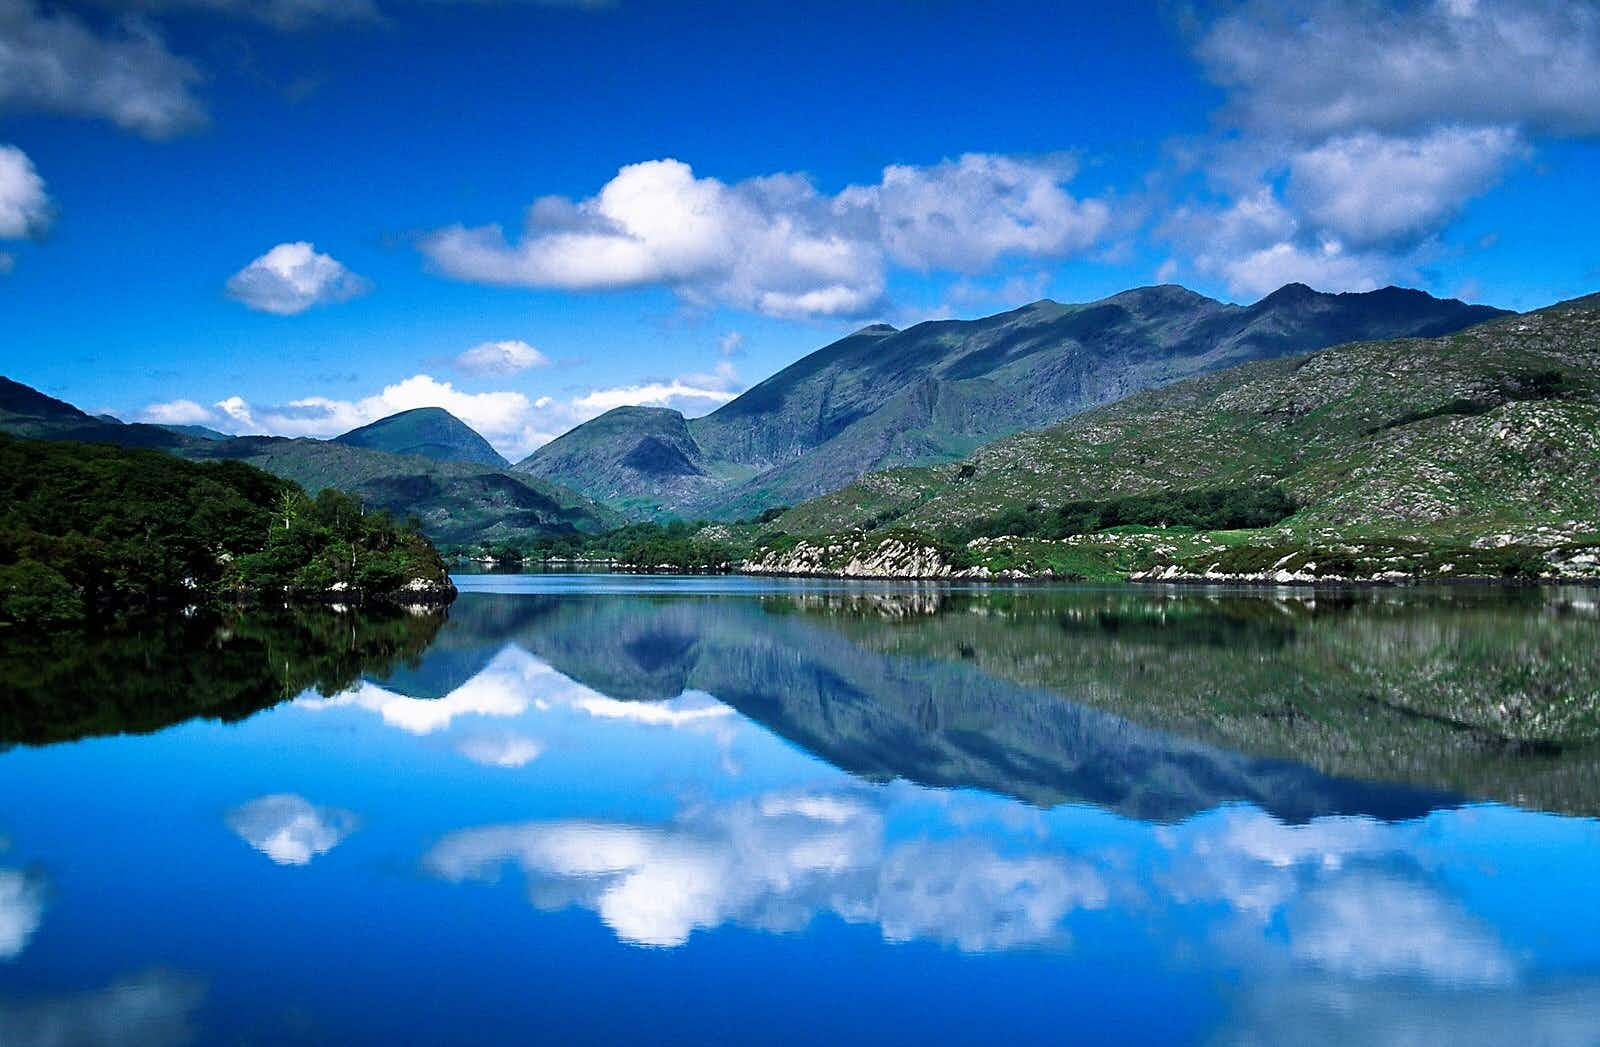 MacGillycuddy's Reeks mountains reflected in a lake